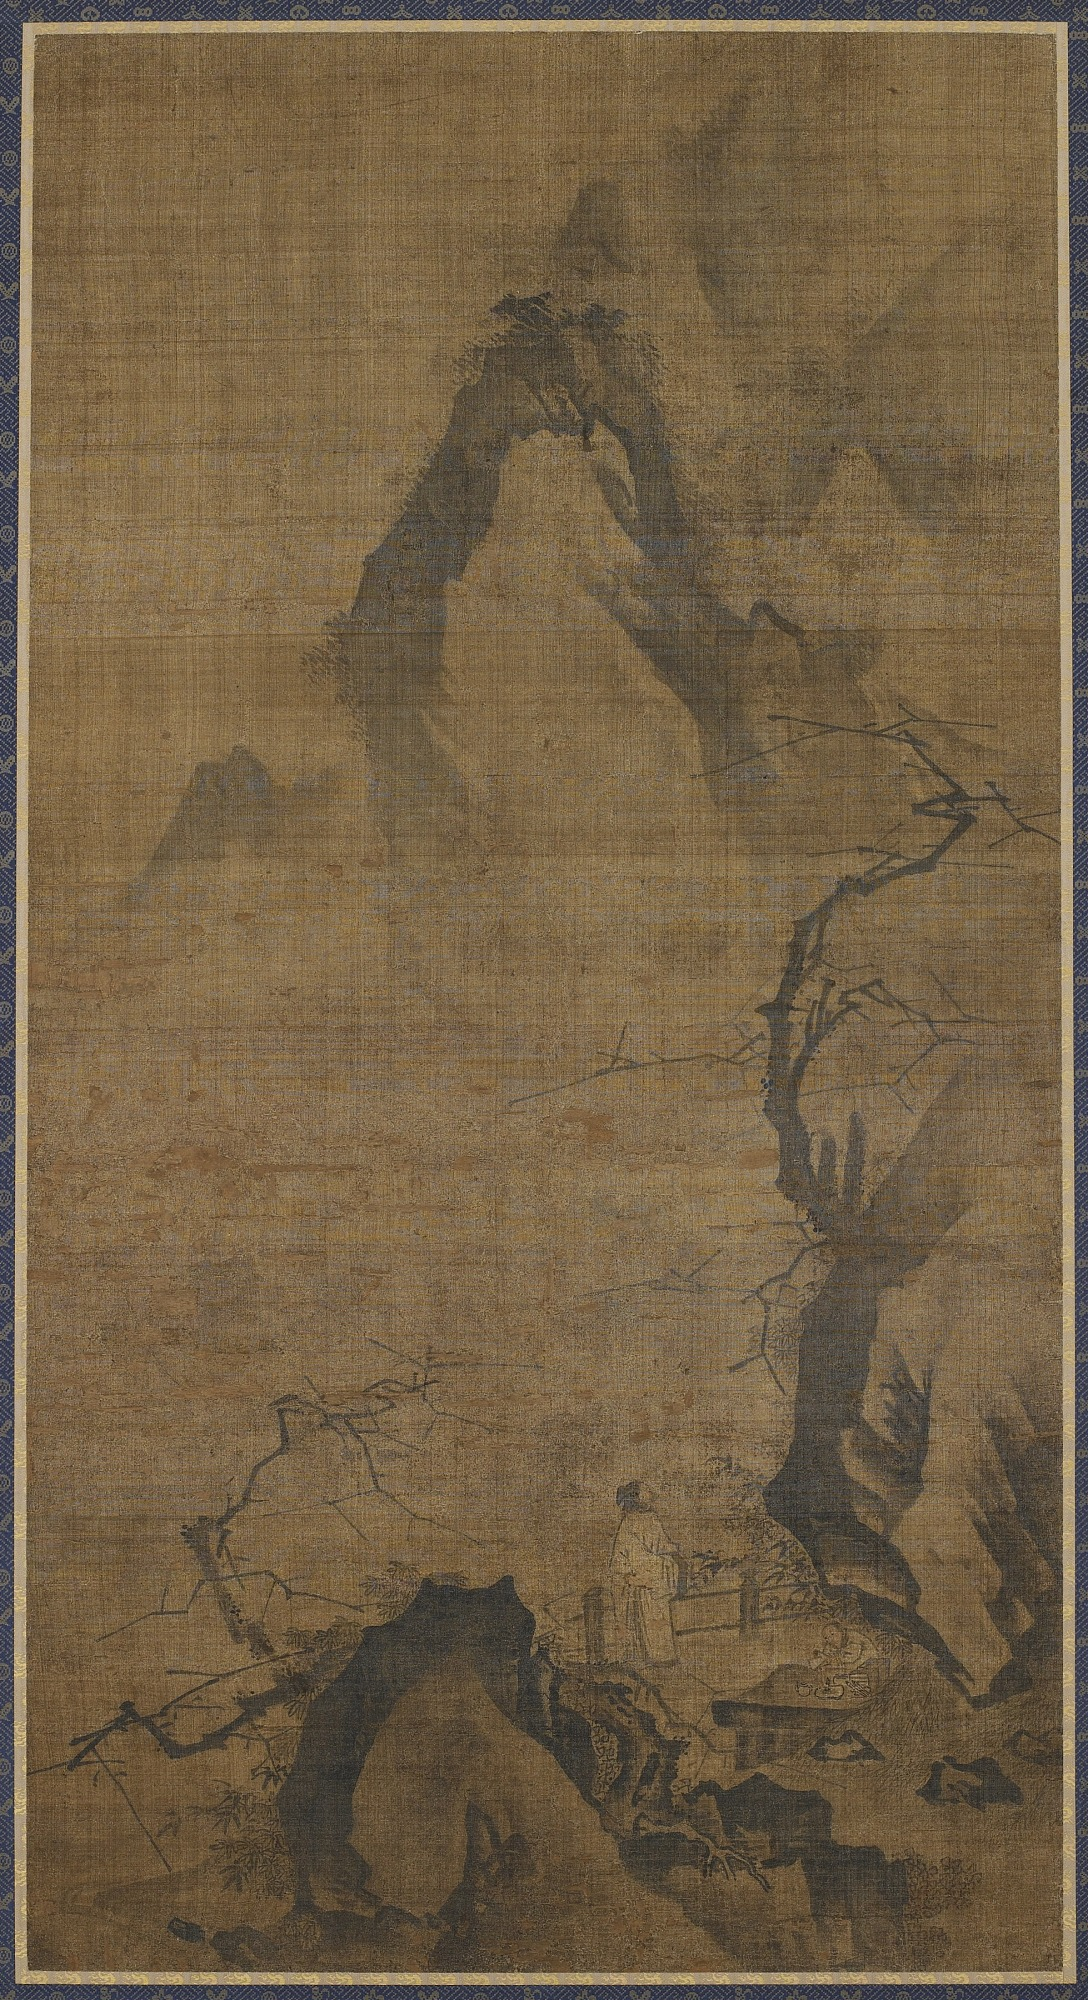 : Landscape: mountain and water; a figure under a plum tree